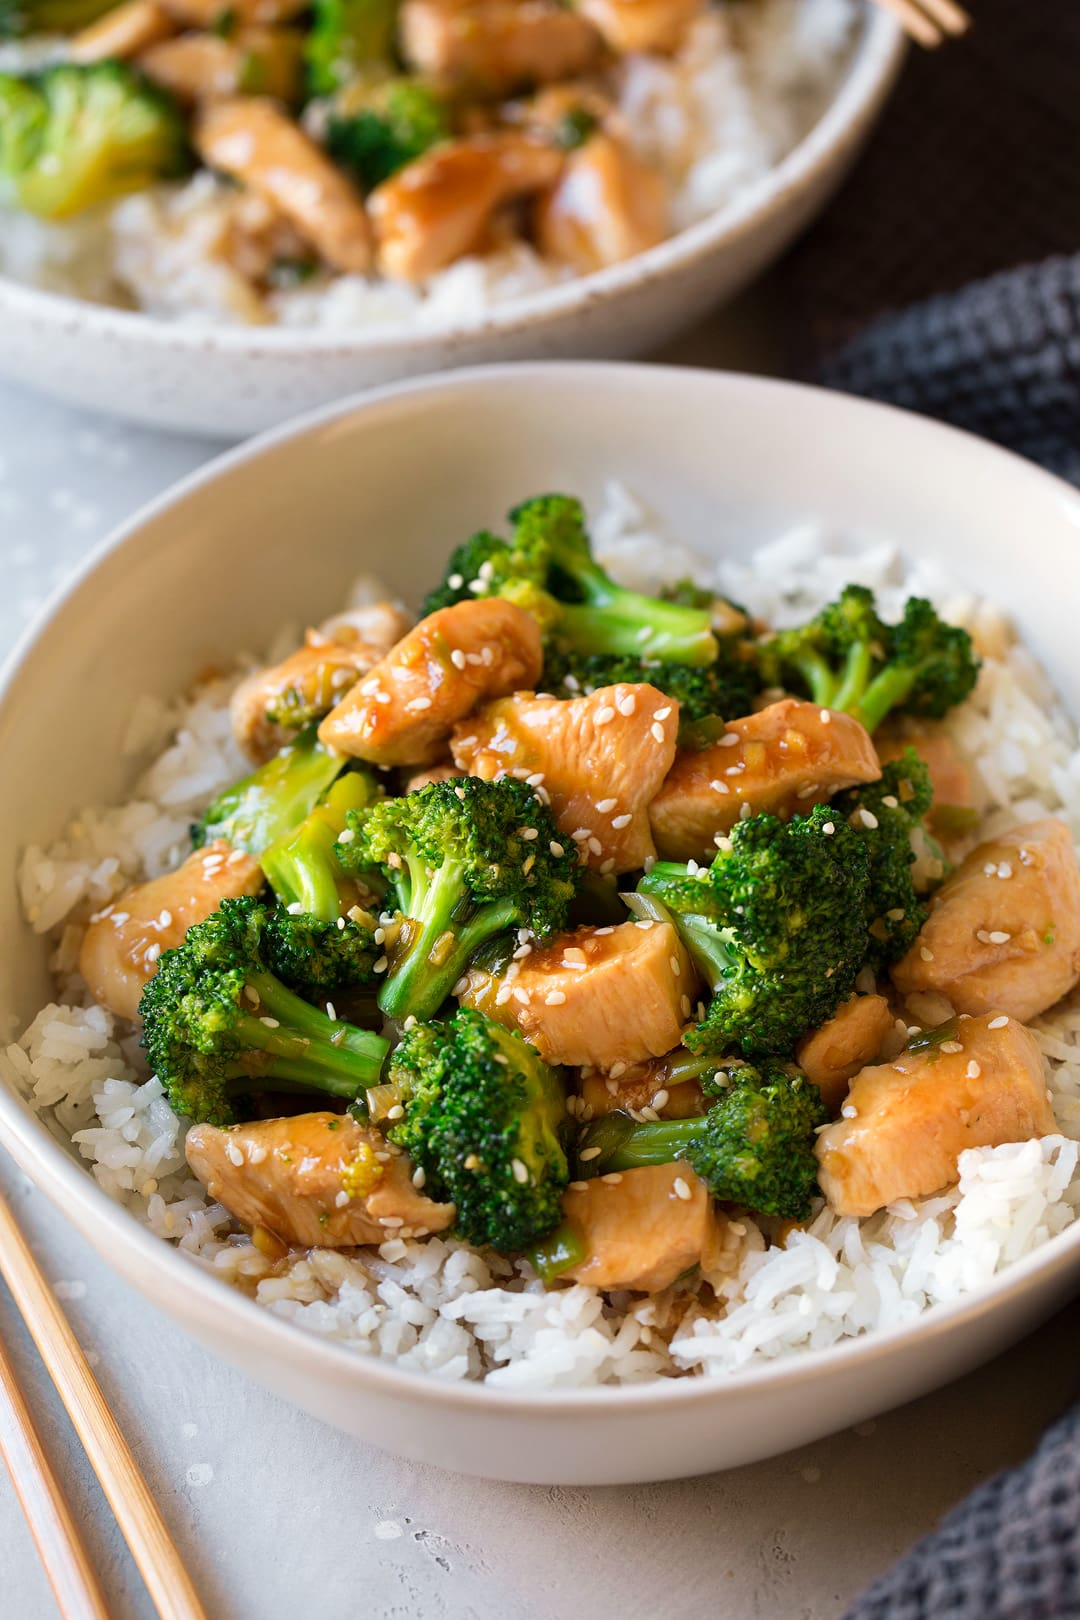 Chicken and Broccoli Stir Fry atop white rice in large bowl